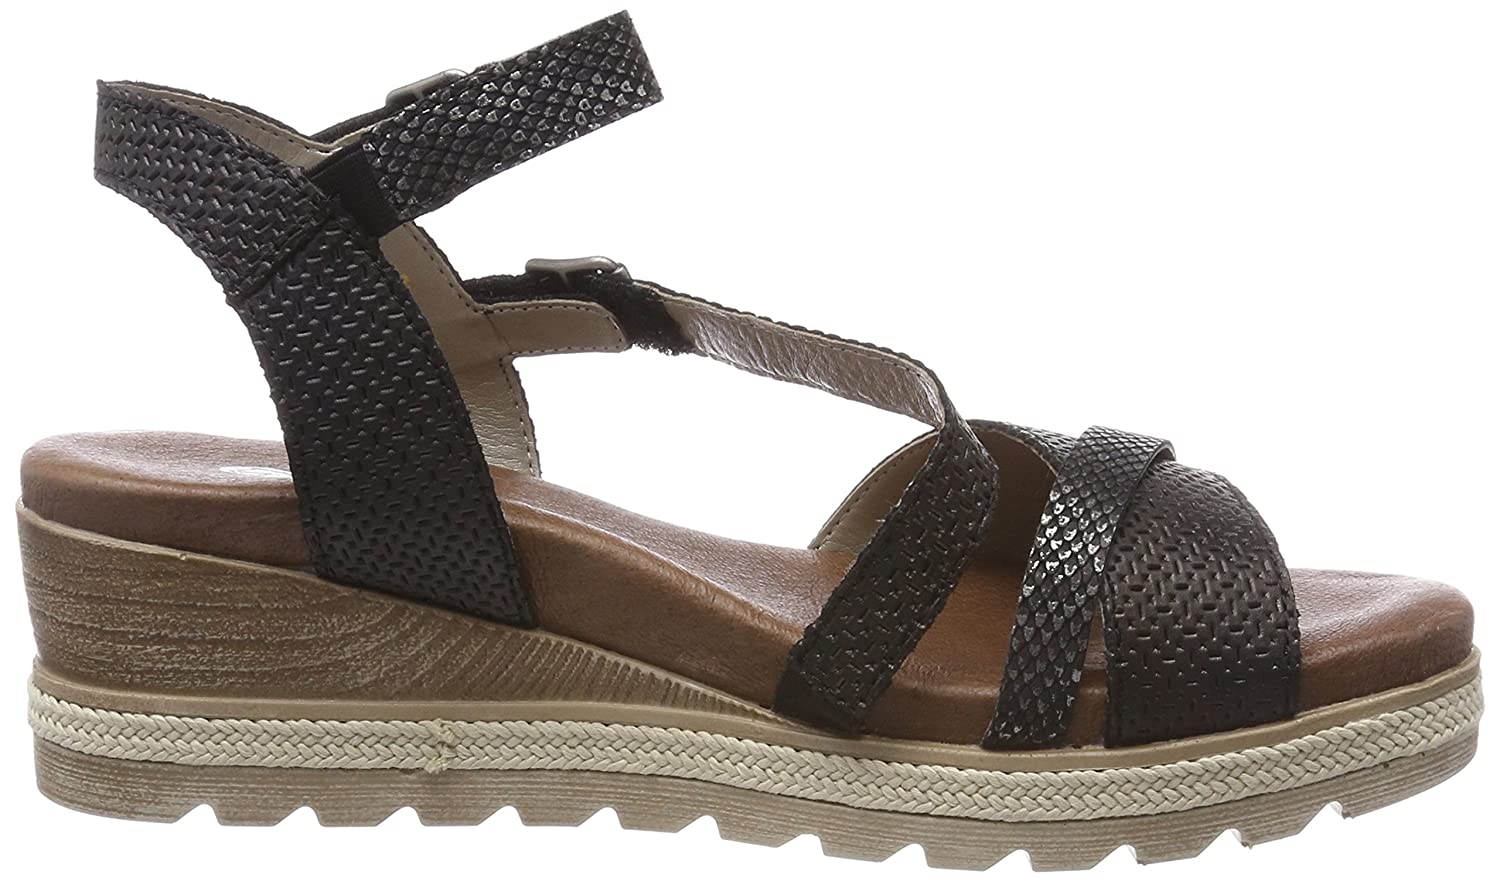 Remonte Double Buckle Low Wedge (D6356) Sandal B076B468VY 4 B(M) US|02 Black